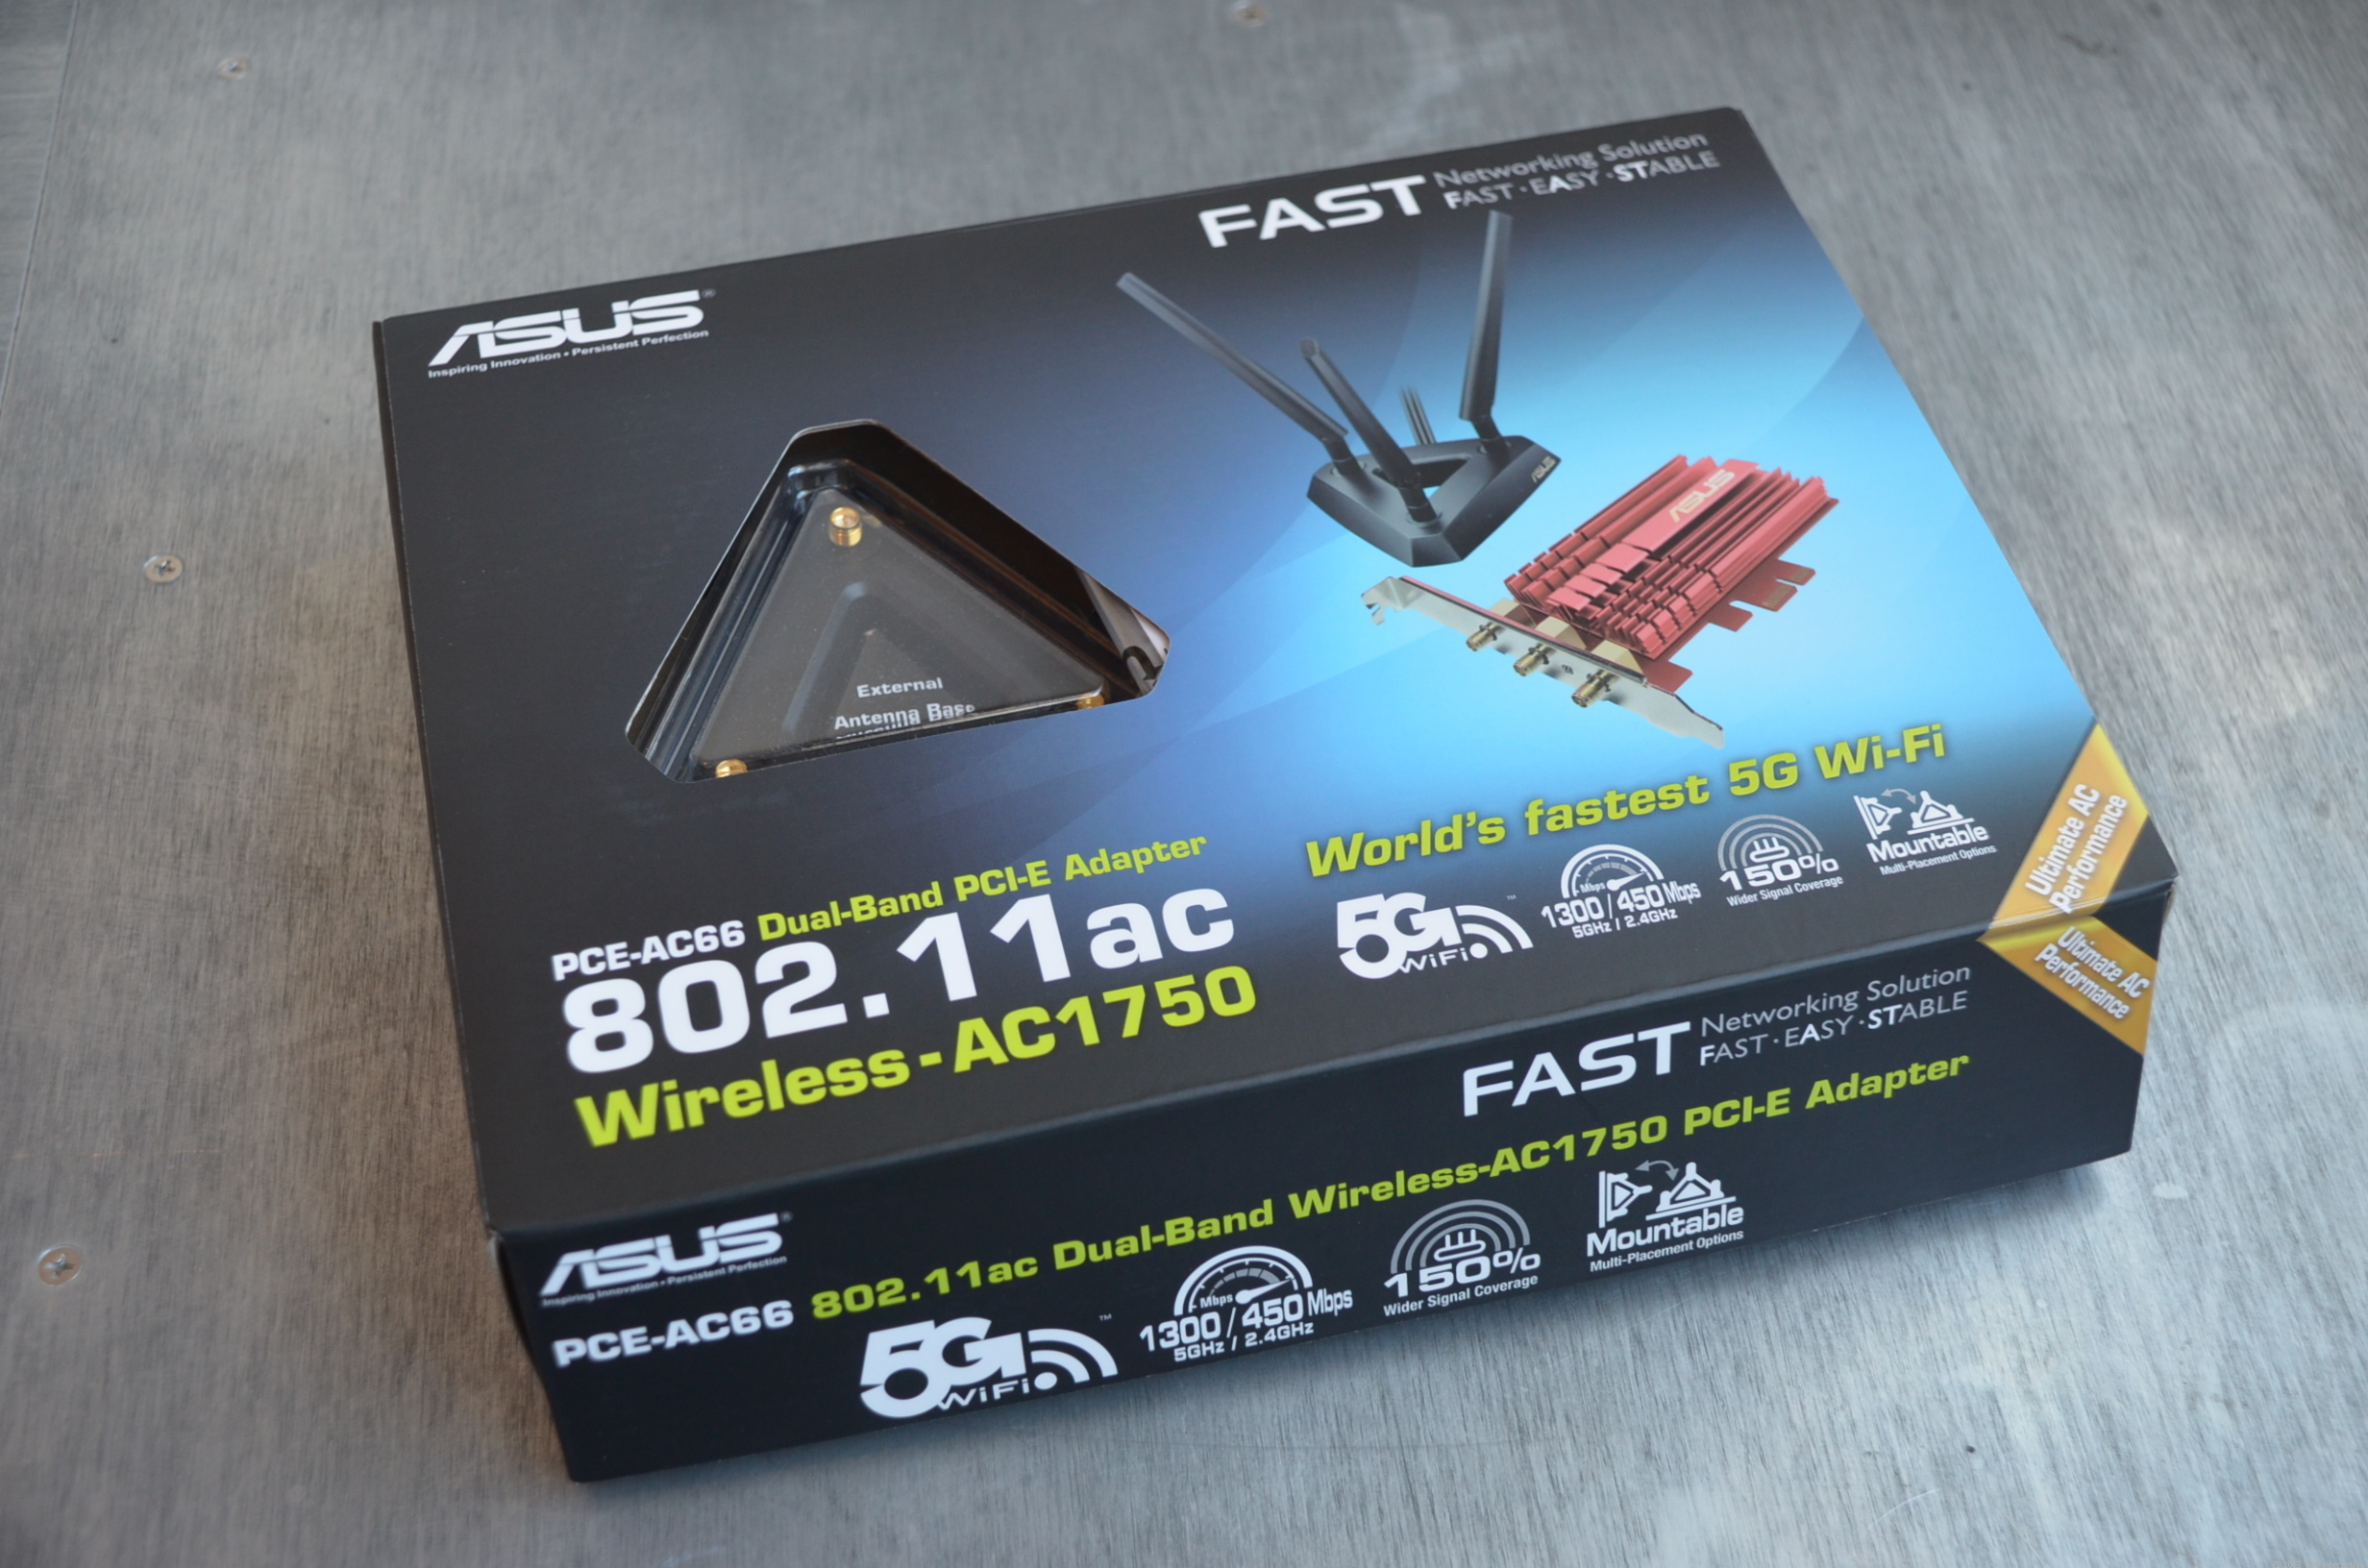 The Asus PCE-AC66 is the first PCIe add-on card that offers the full speed of the 802.11ac Wi-Fi standard.